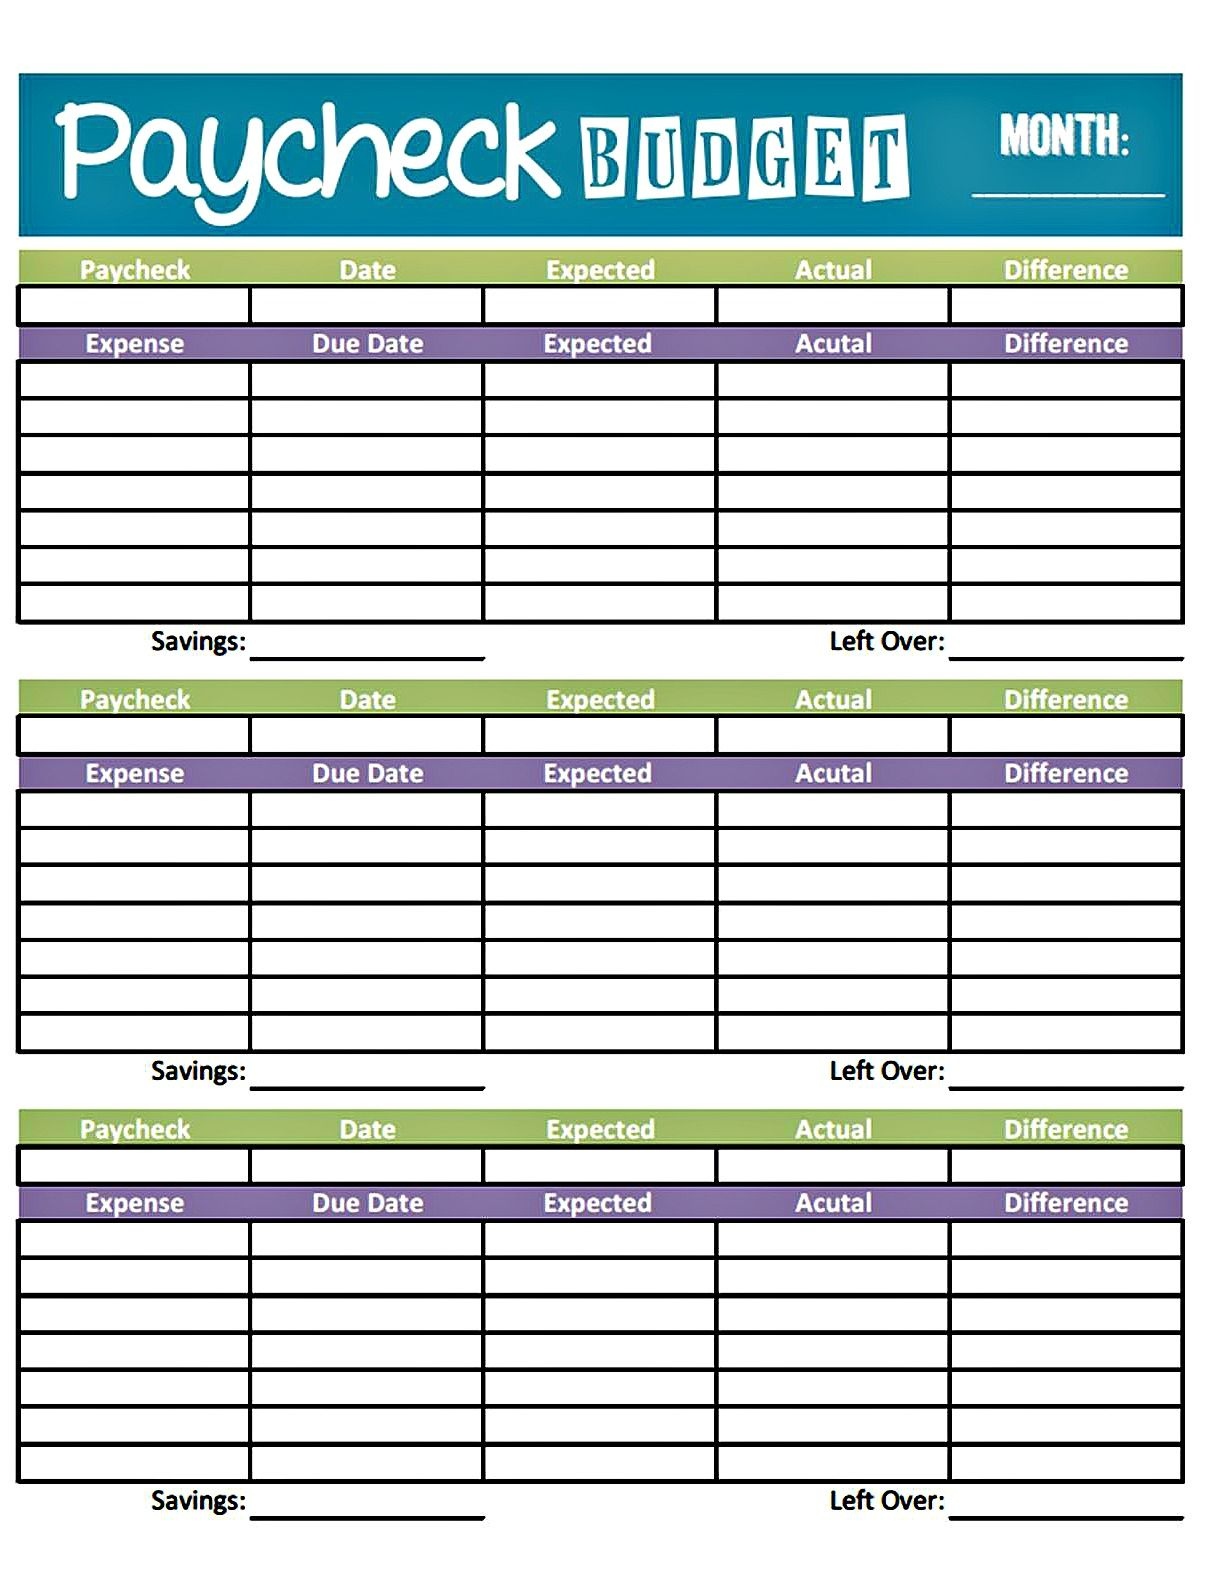 Worksheets Printable Budget Planning Worksheet easy printable budget worksheet get paid weekly and charlie gets bi weekly